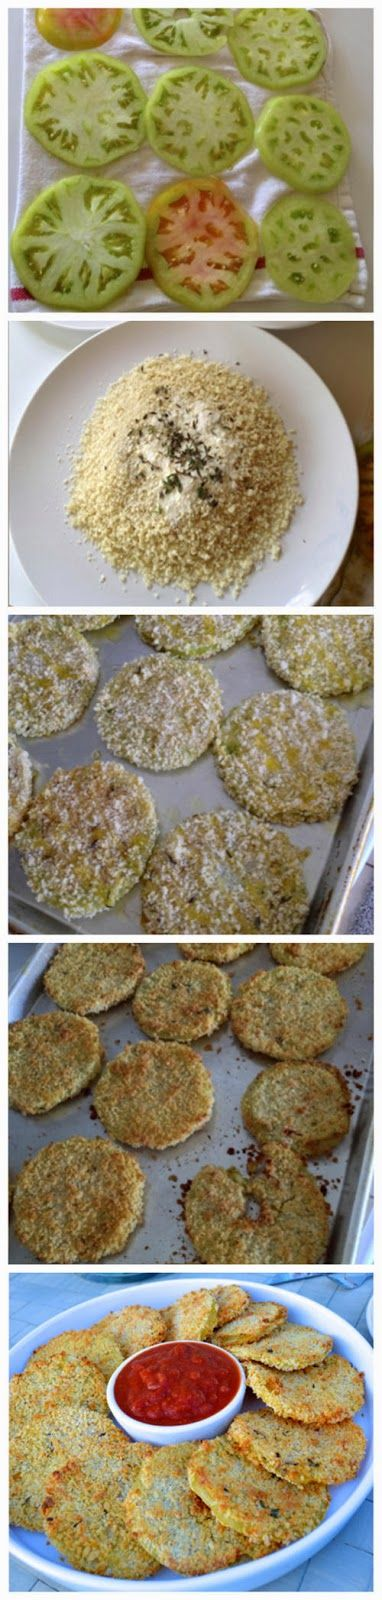 Oven-Fried Green Tomatoes                                                                                                                                                                                 More